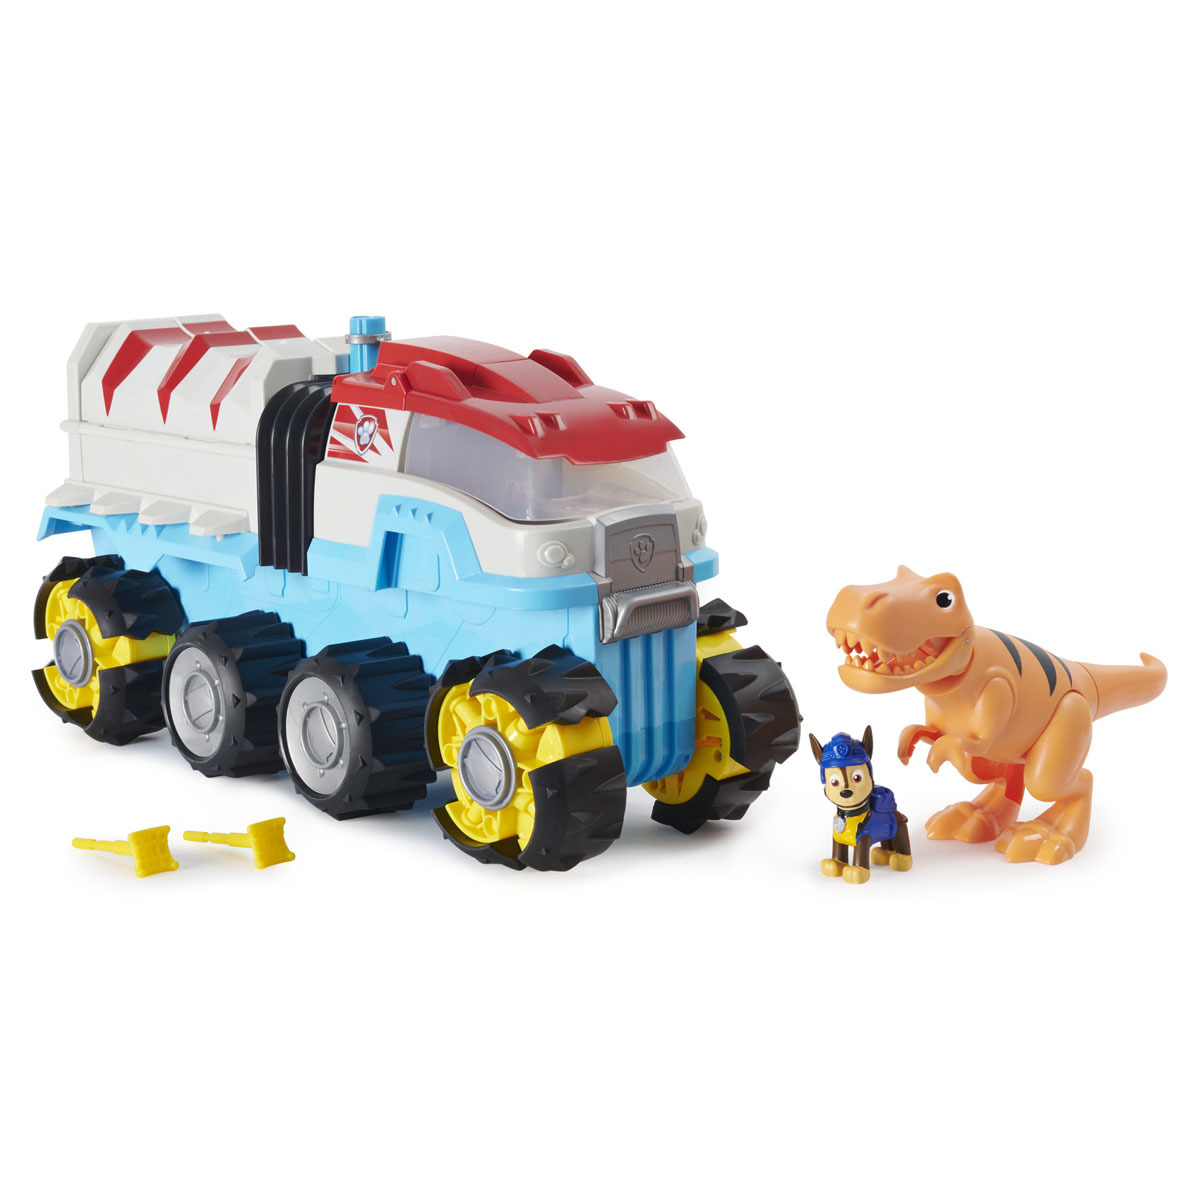 Paw Patrol Dino Rescue Dinosaur Patroller Team Vehicle with Chase and T-Rex Figures from Early Learning Center